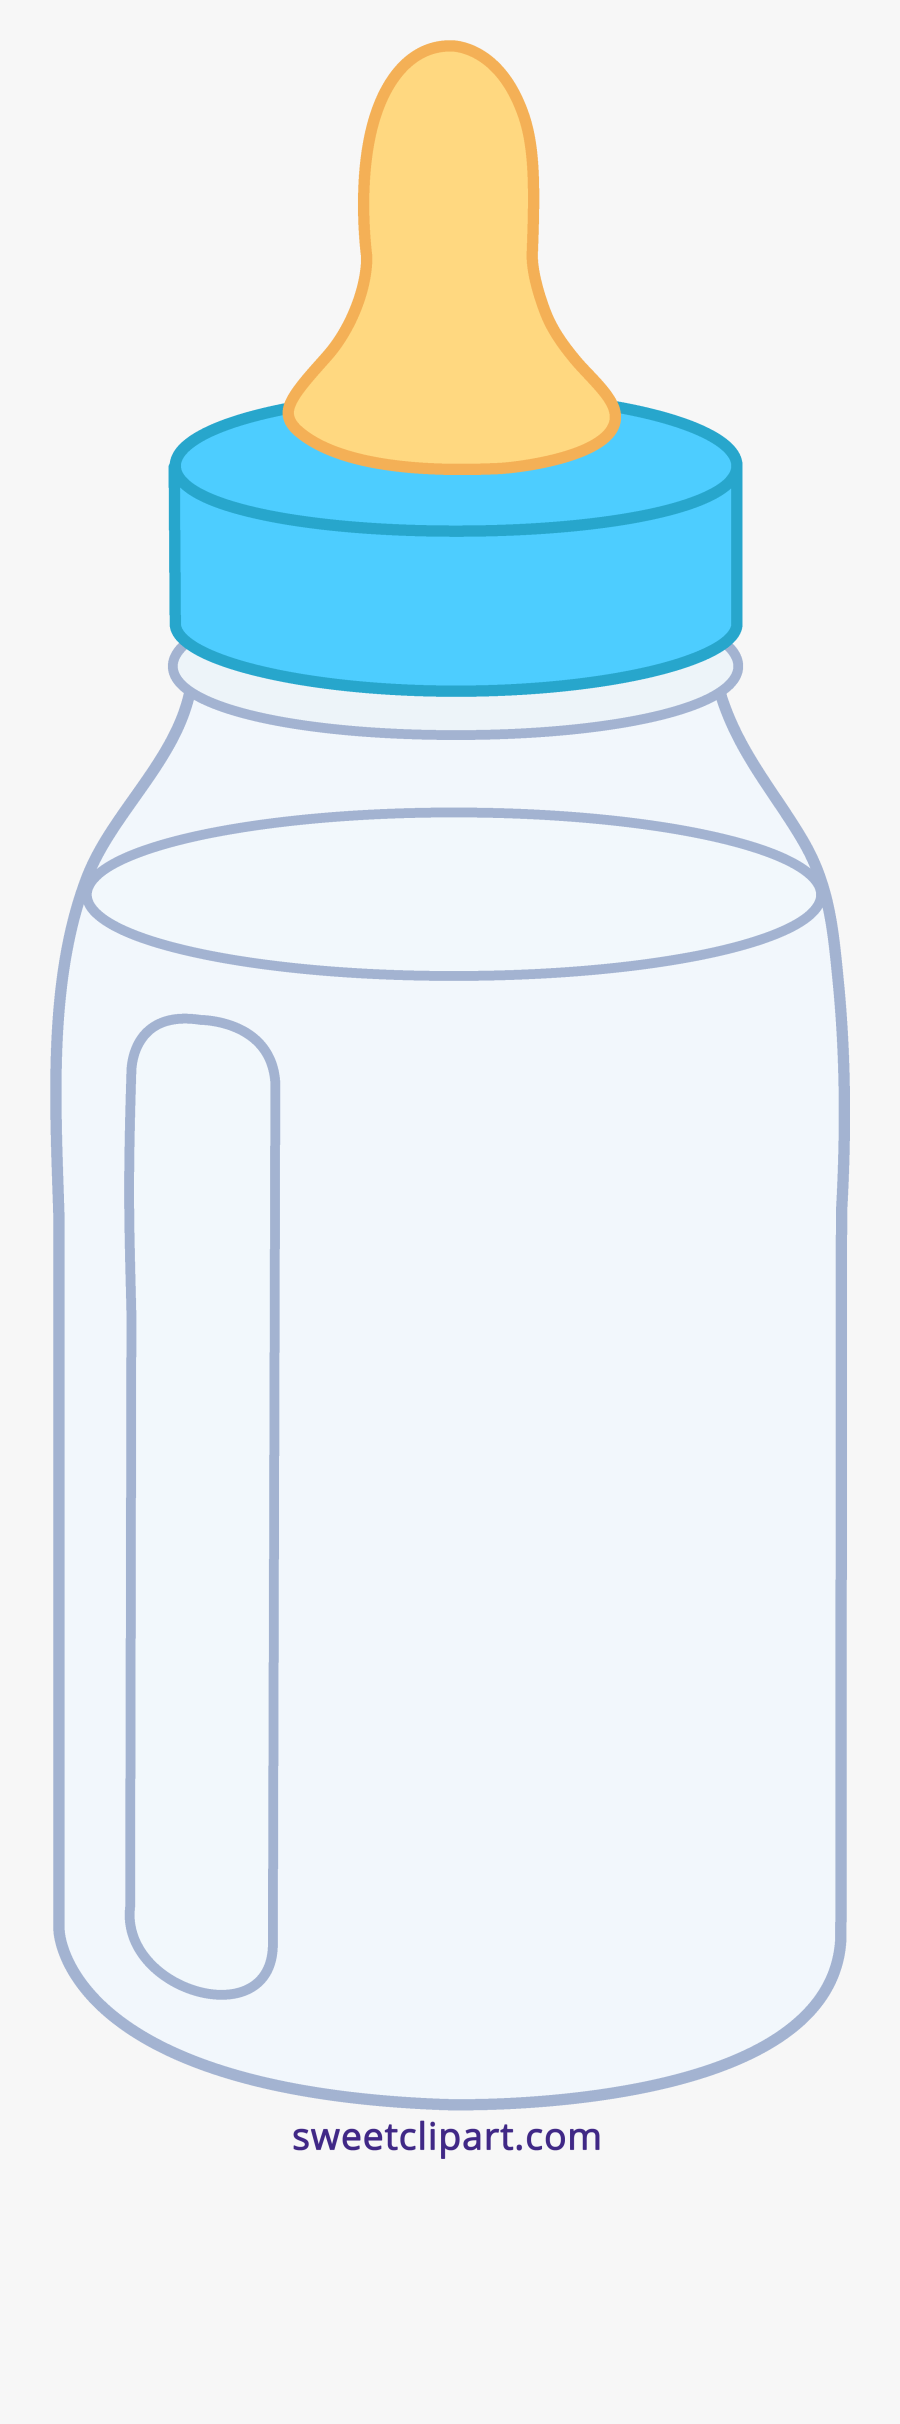 Baby Bottle Transparent & Png Clipart Free Download - Baby Bottle Clipart Png, Transparent Clipart